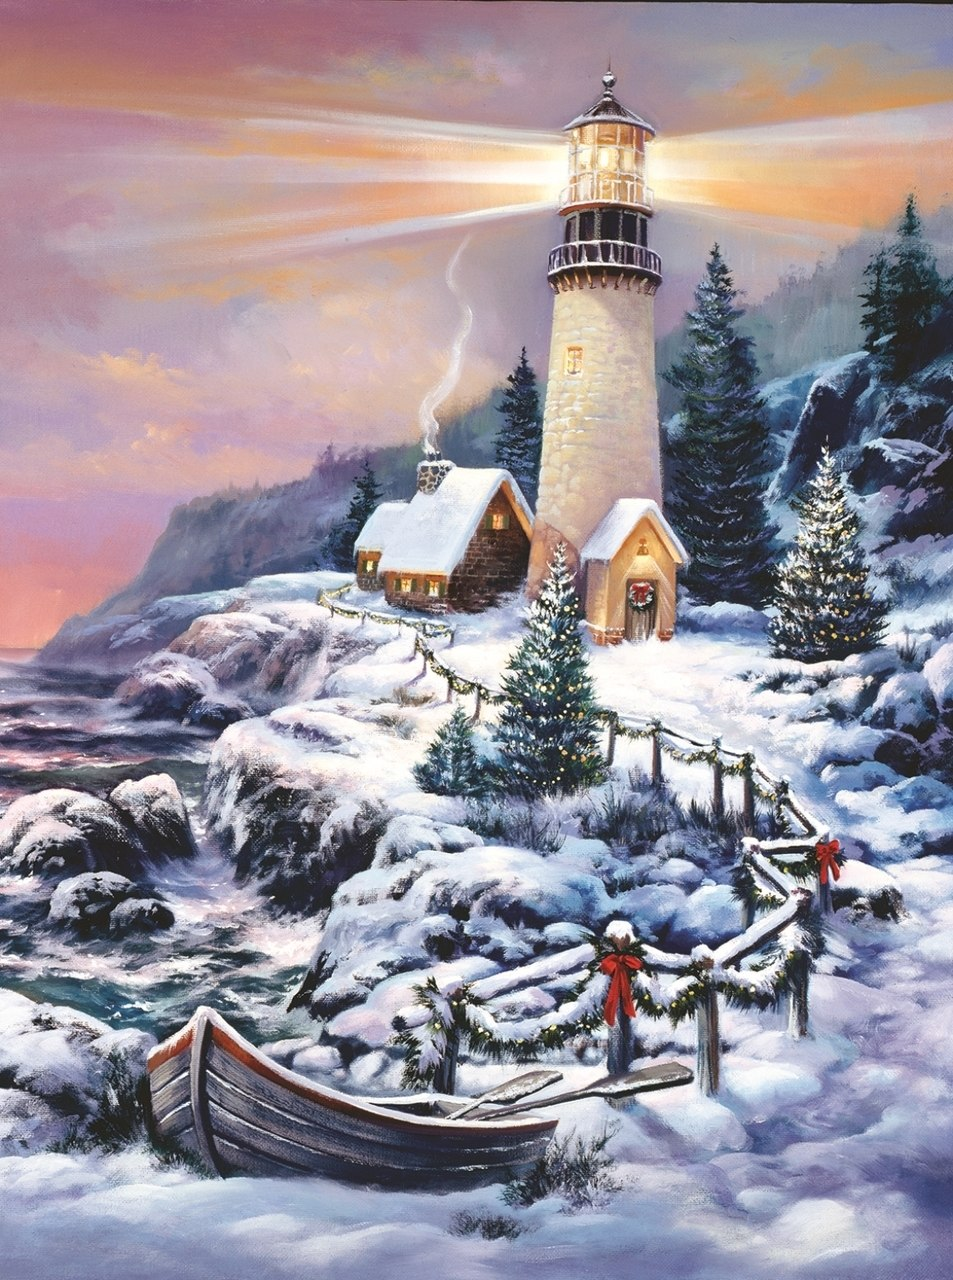 Christmas Lighthouse - 1000pc Jigsaw Puzzle By Sunsout  			  					NEW